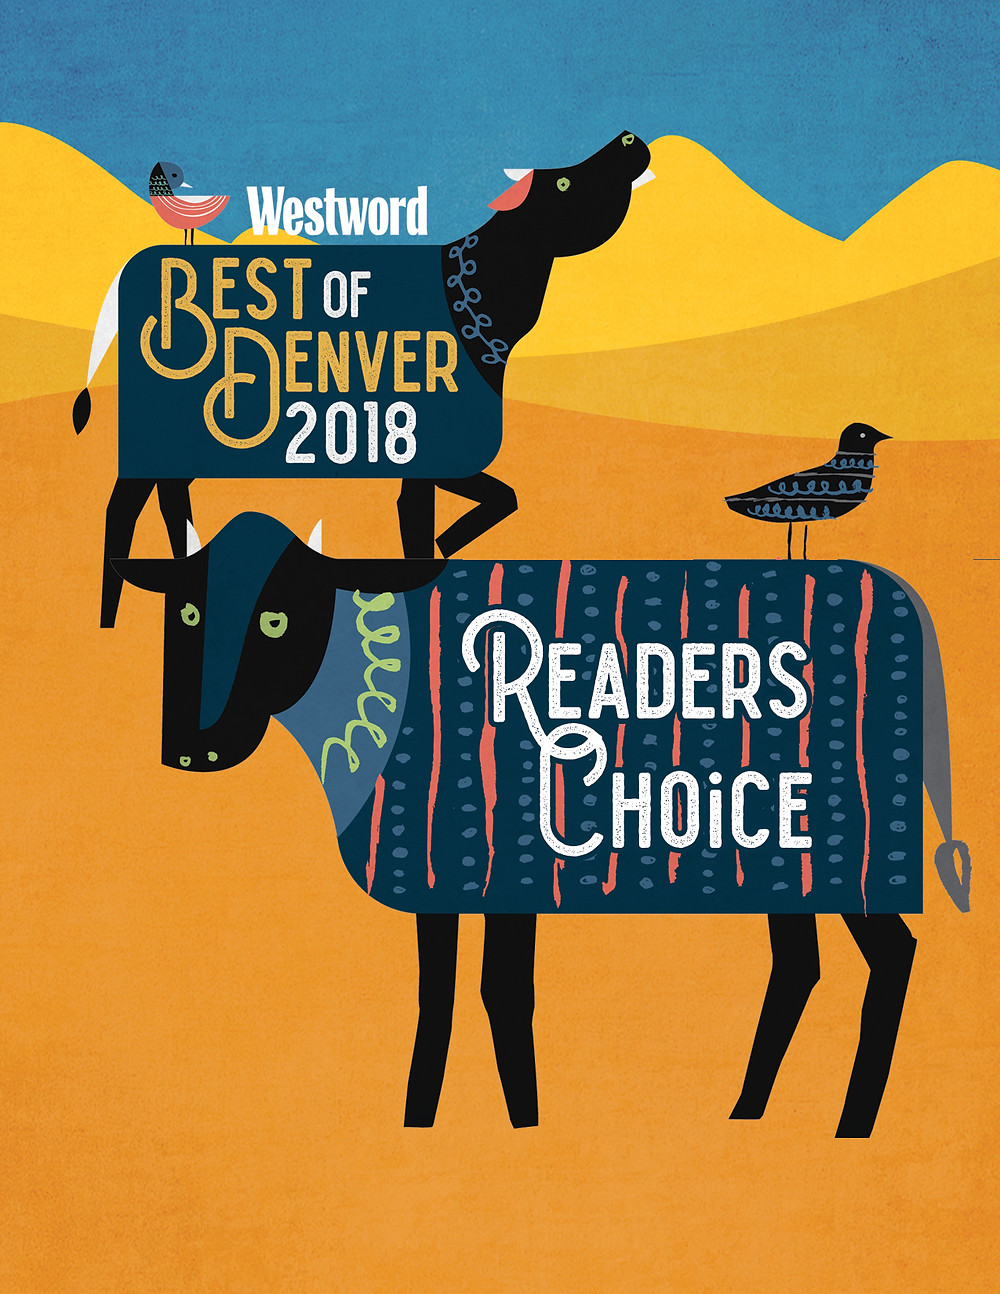 Denver's Best Sports Bar Readers Choice in Westword